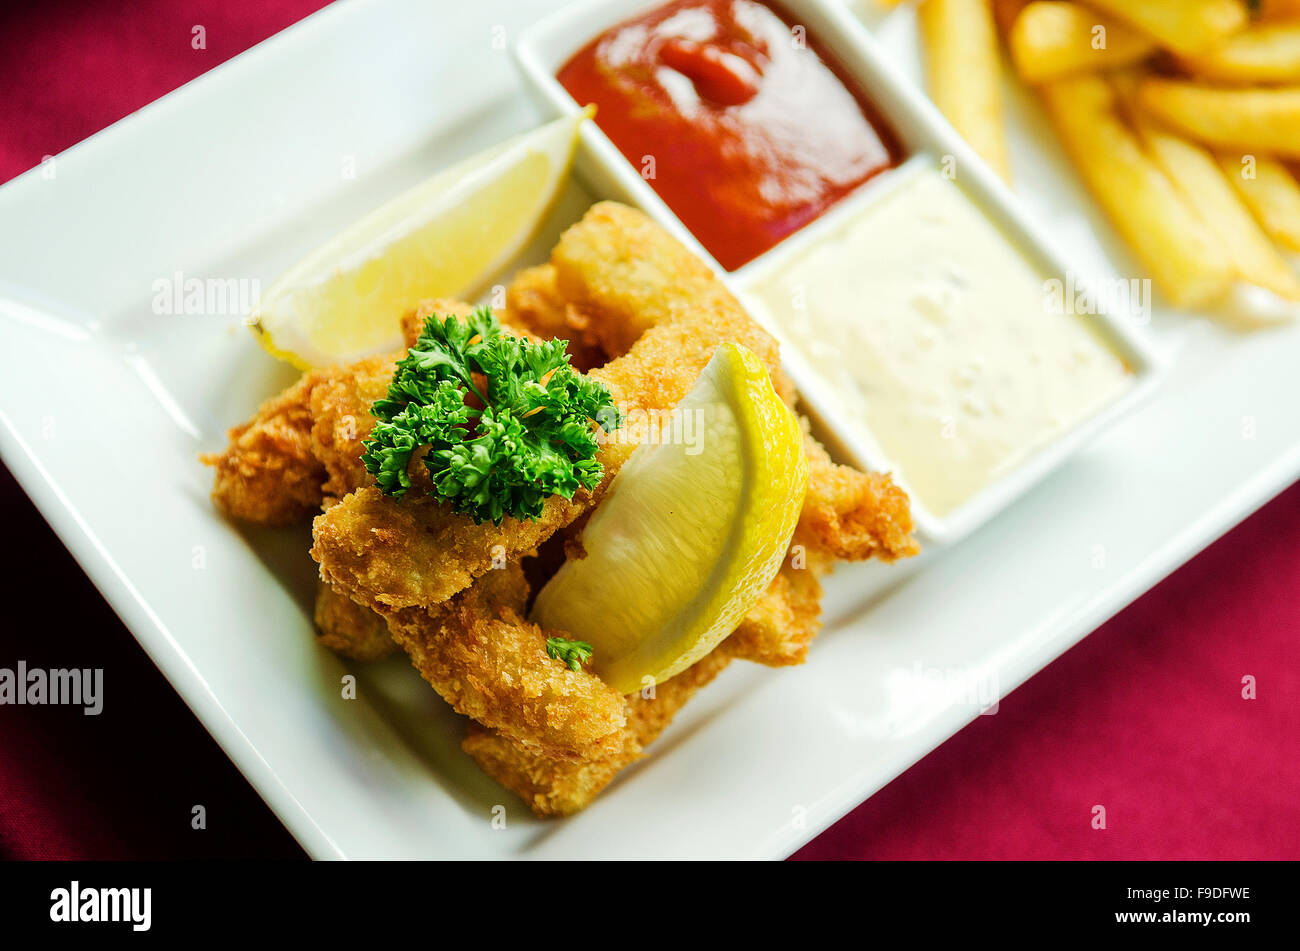 fish fingers and chips on plate classic british food - Stock Image